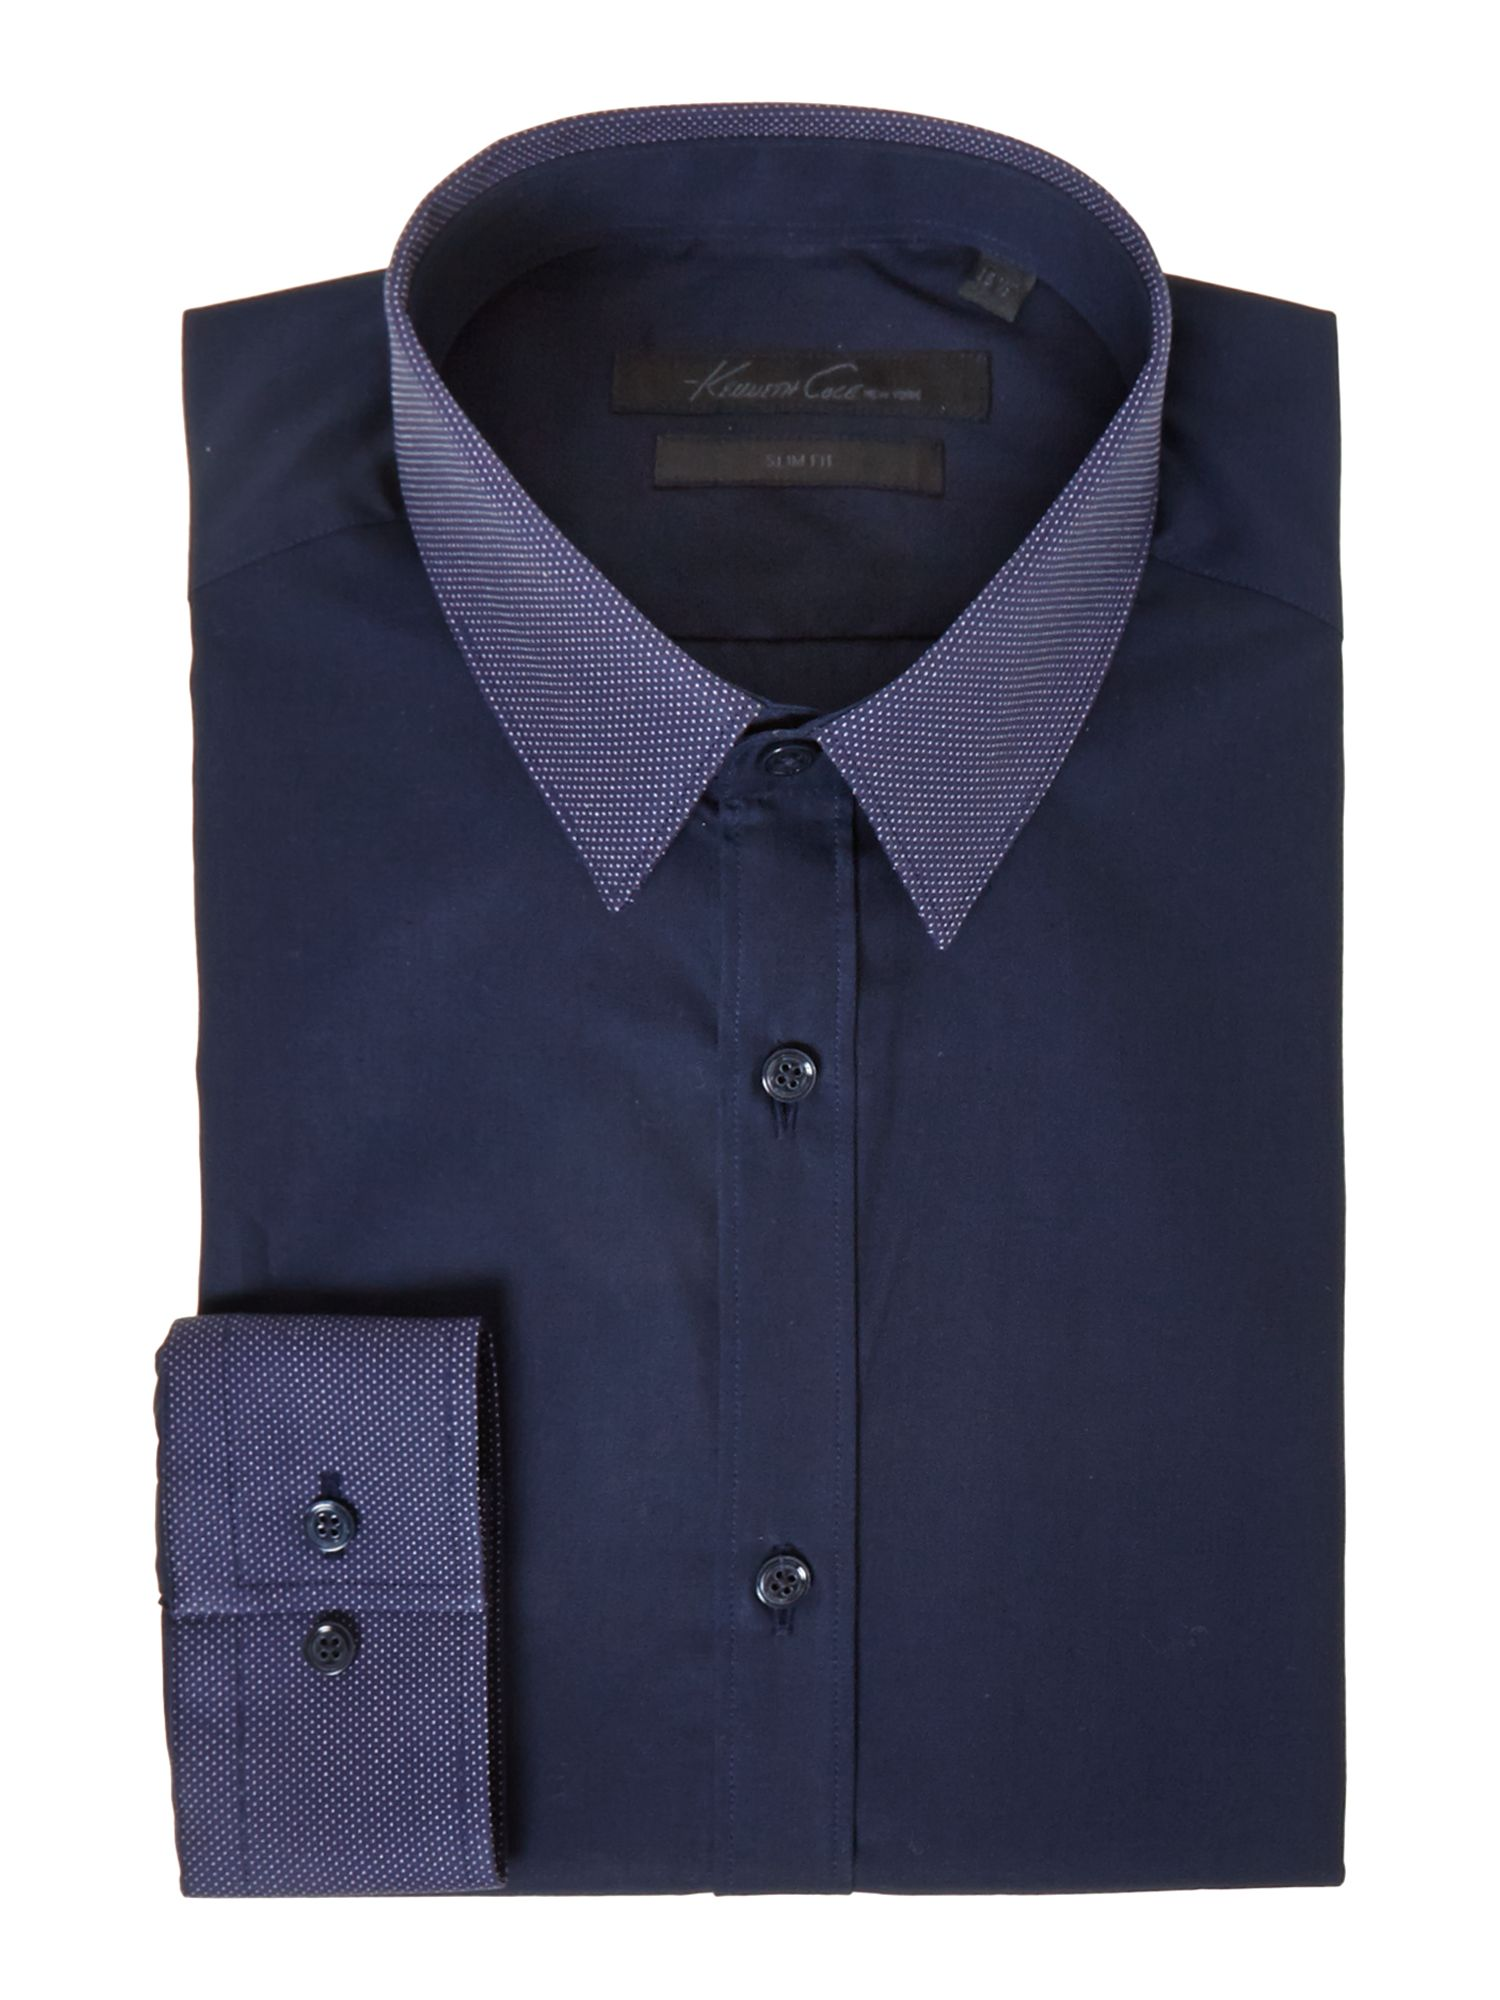 Adler pindot detail collar and cuff shirt